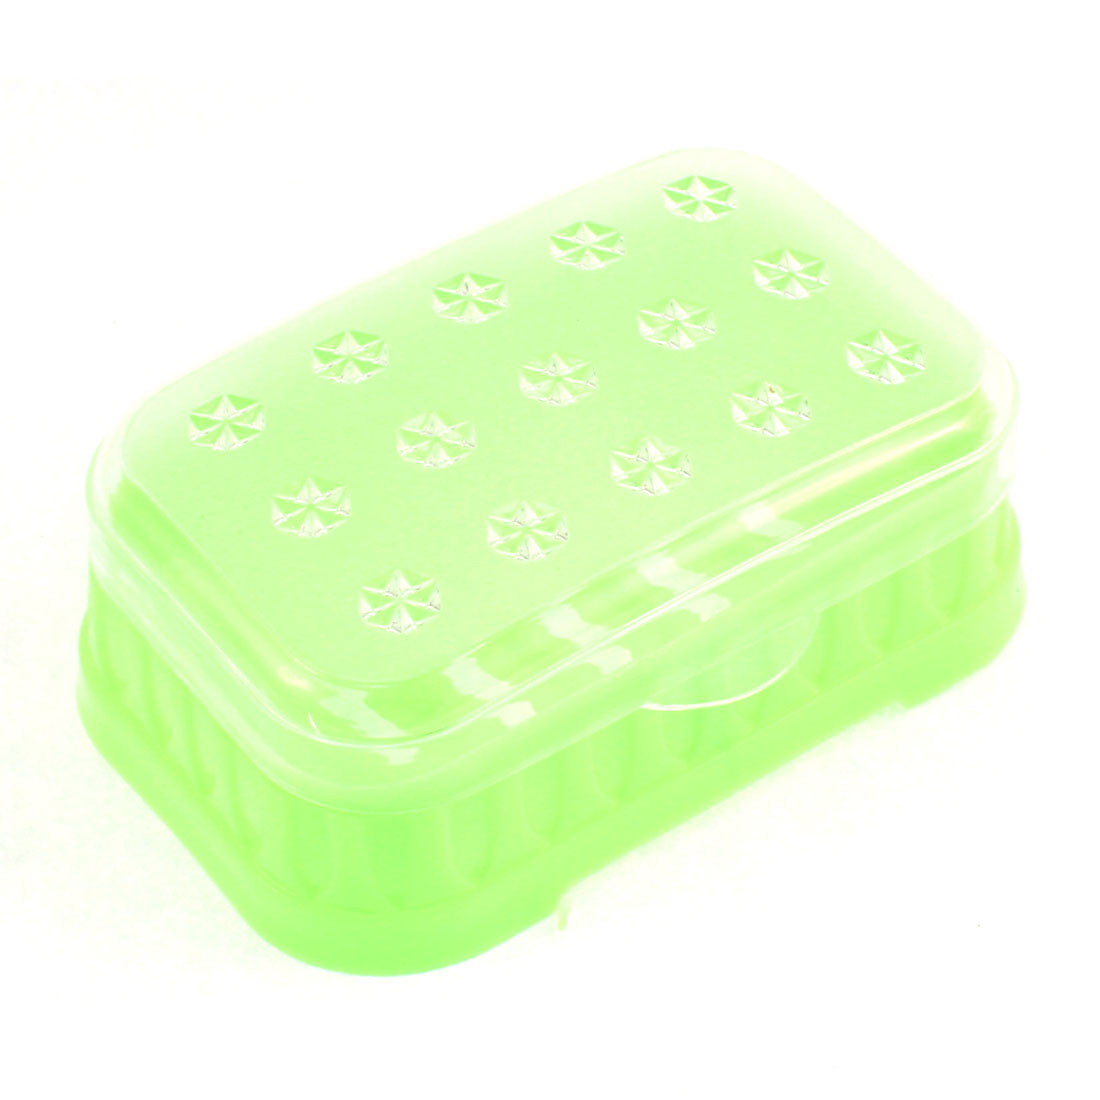 Plastic Flowers Printed Cover Soap Dish Case Box Light Green